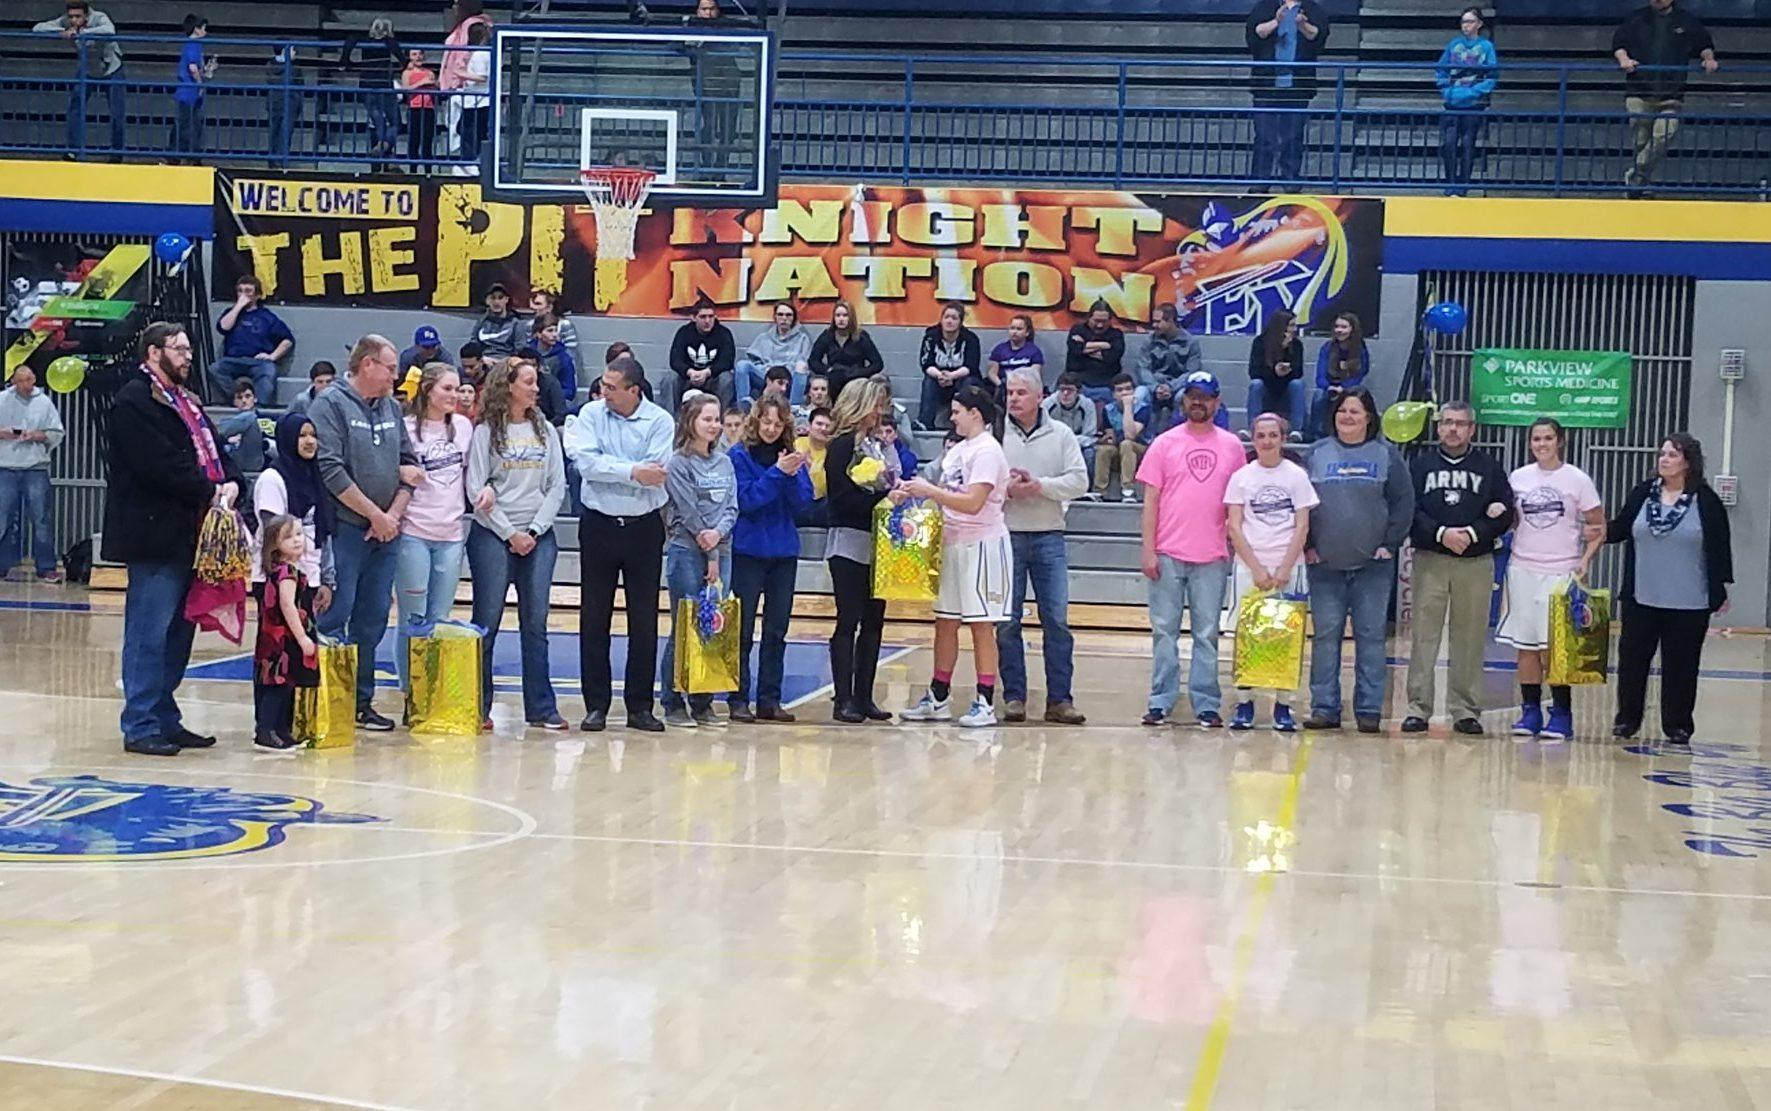 The seniors of the varsity girls basketball team standing with their parents. From left to right (students): Ceudah Hajashafira, Shelby Henschen, Jessica Vandiver, Lanie Allen, Kendaya Mapes, and Abbie Peterson